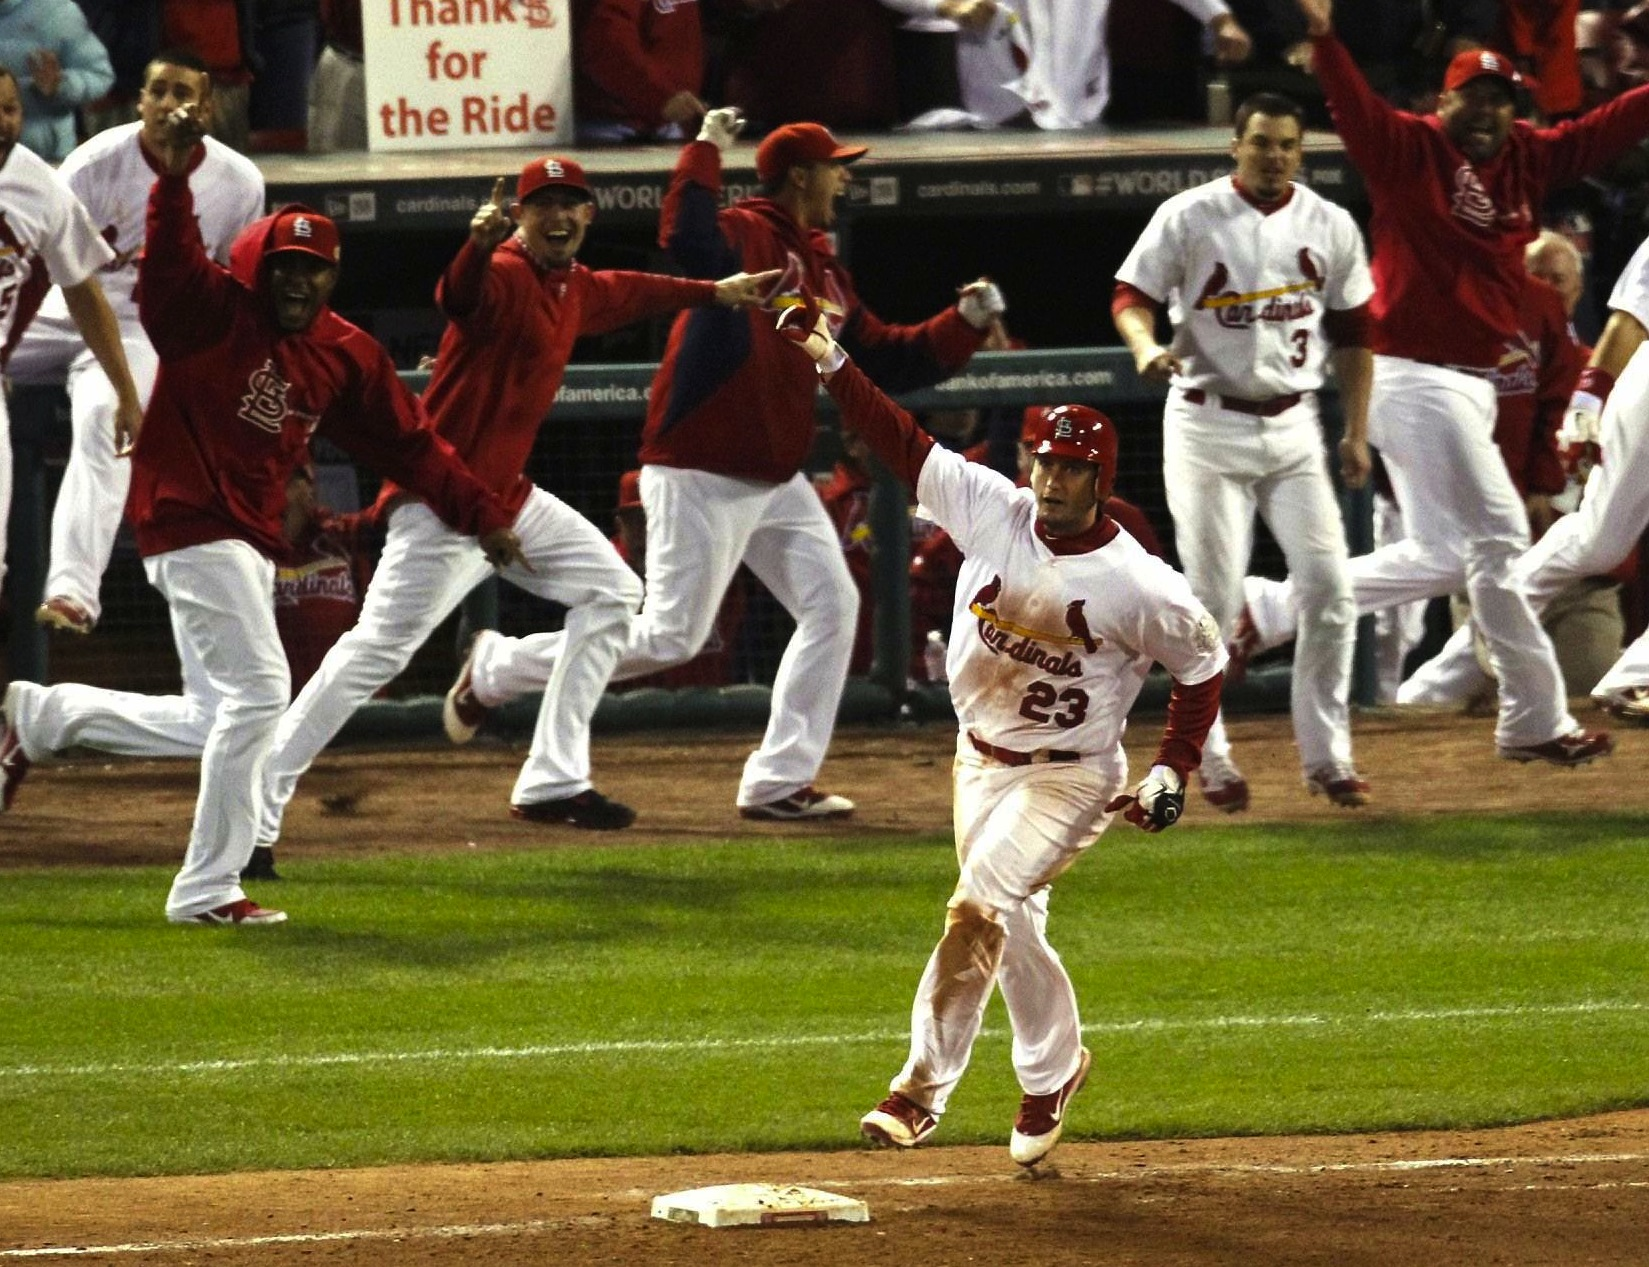 14 david freese home run game 6 hometown sports heroes